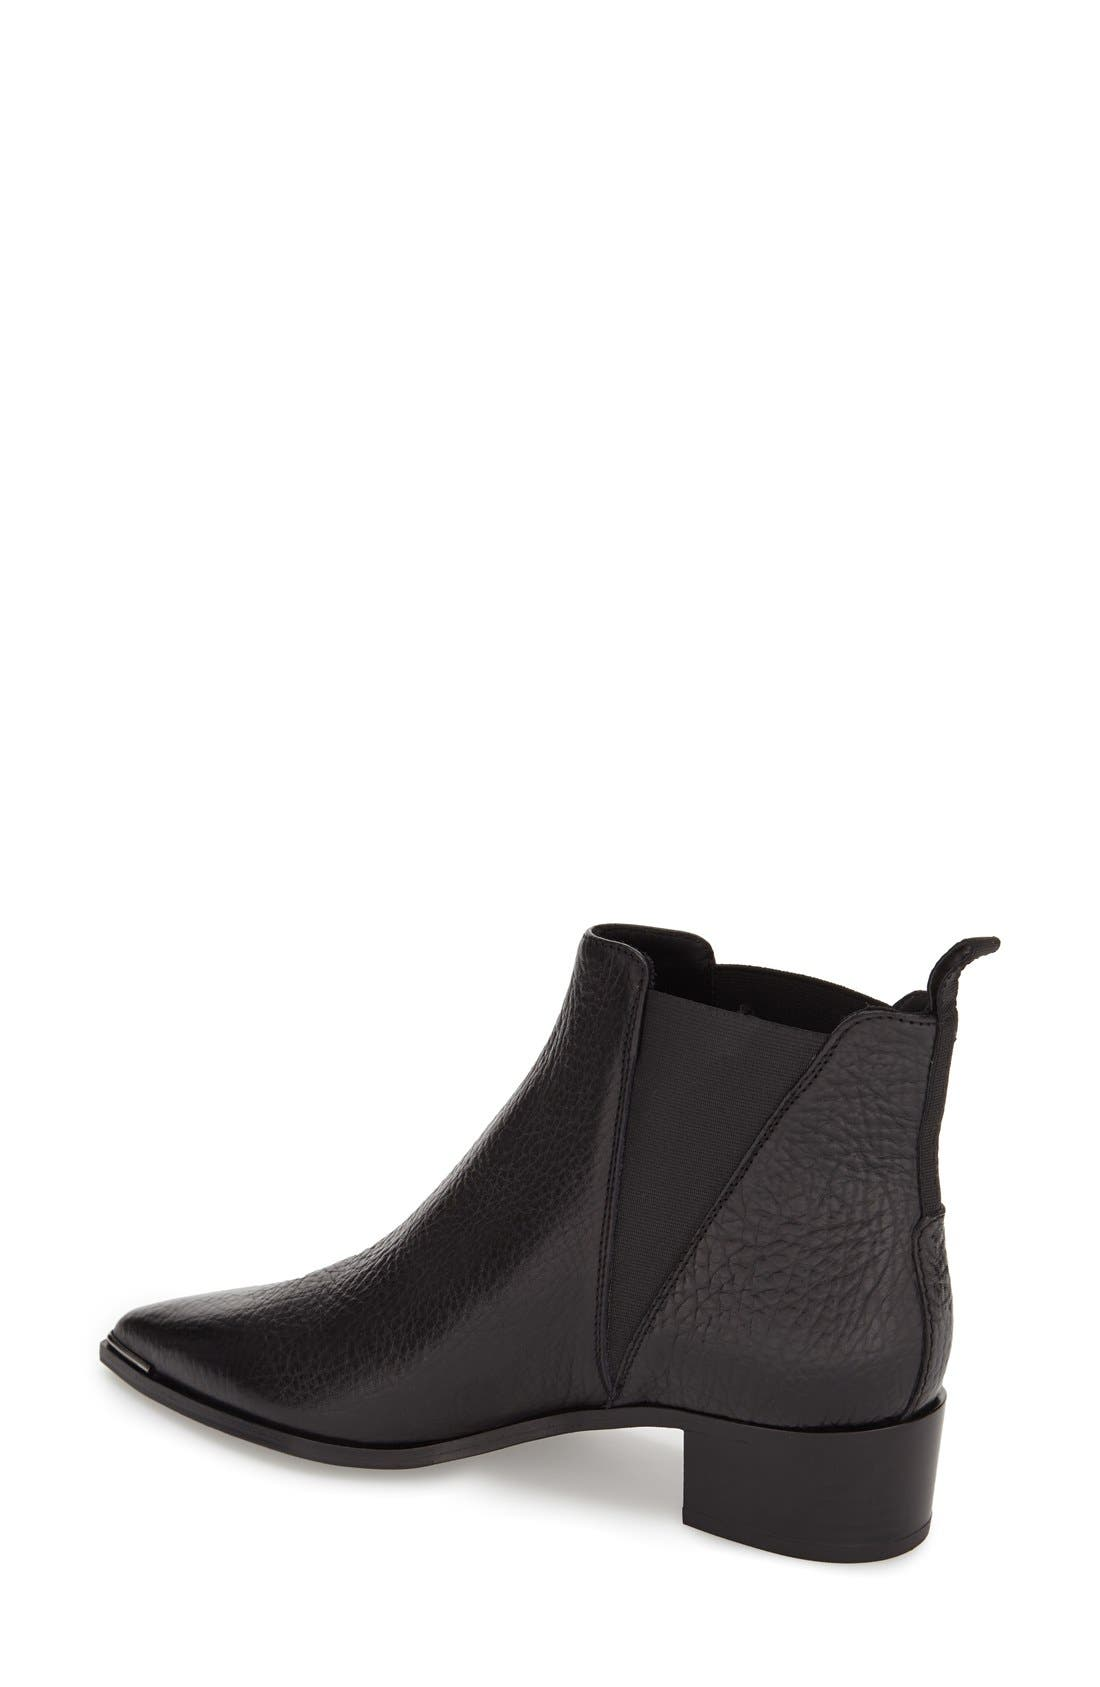 Jensen Pointy Toe Bootie,                             Alternate thumbnail 2, color,                             BLACK GRAIN LEATHER